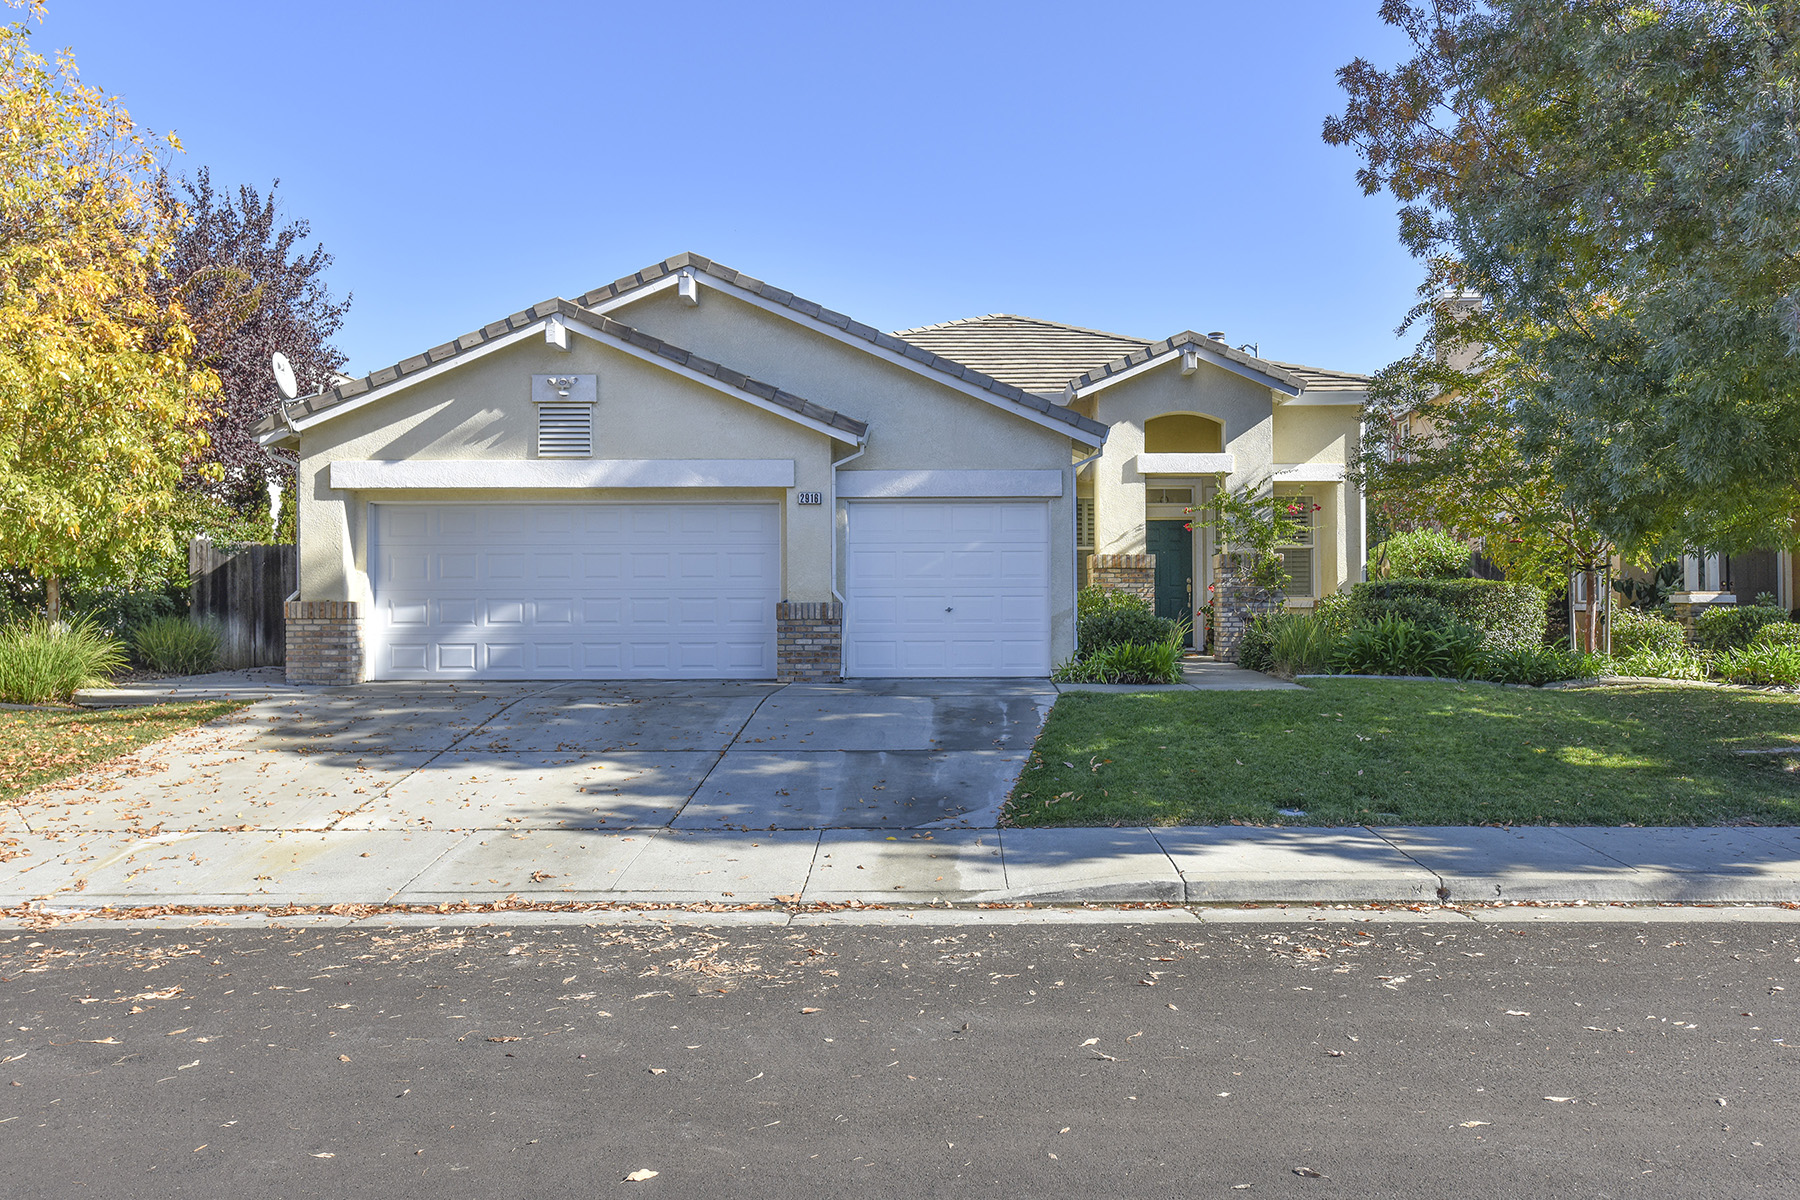 sales property at 2916 Lakefront Ct, Fairfield, CA 94533